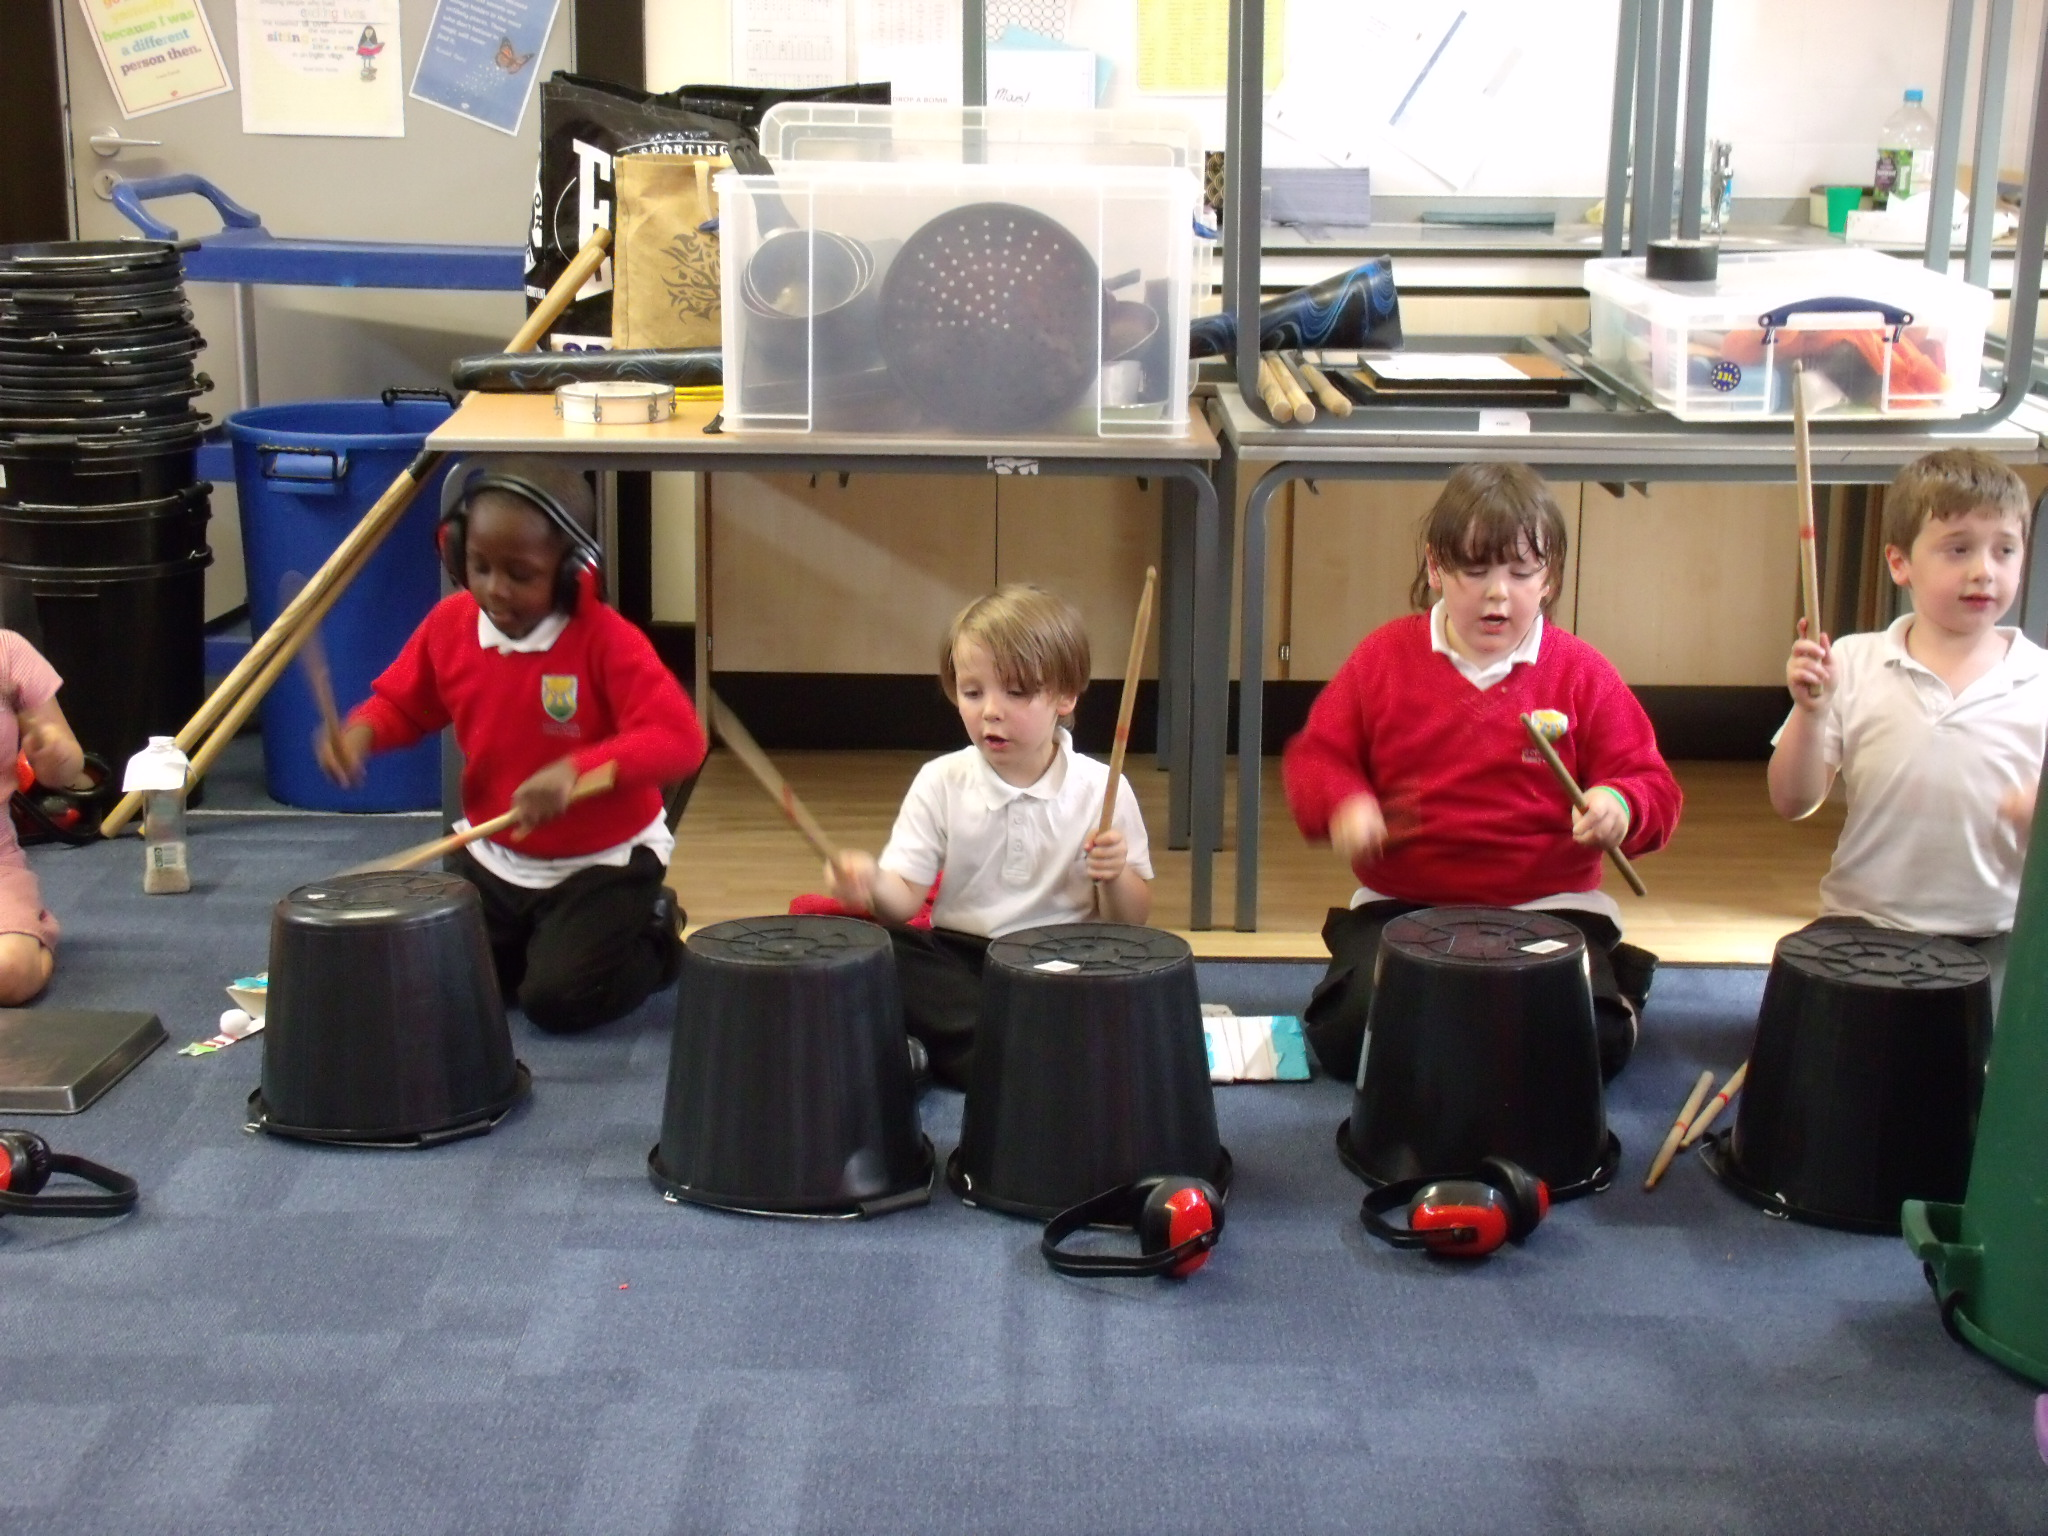 School children playing music on large empty buckets